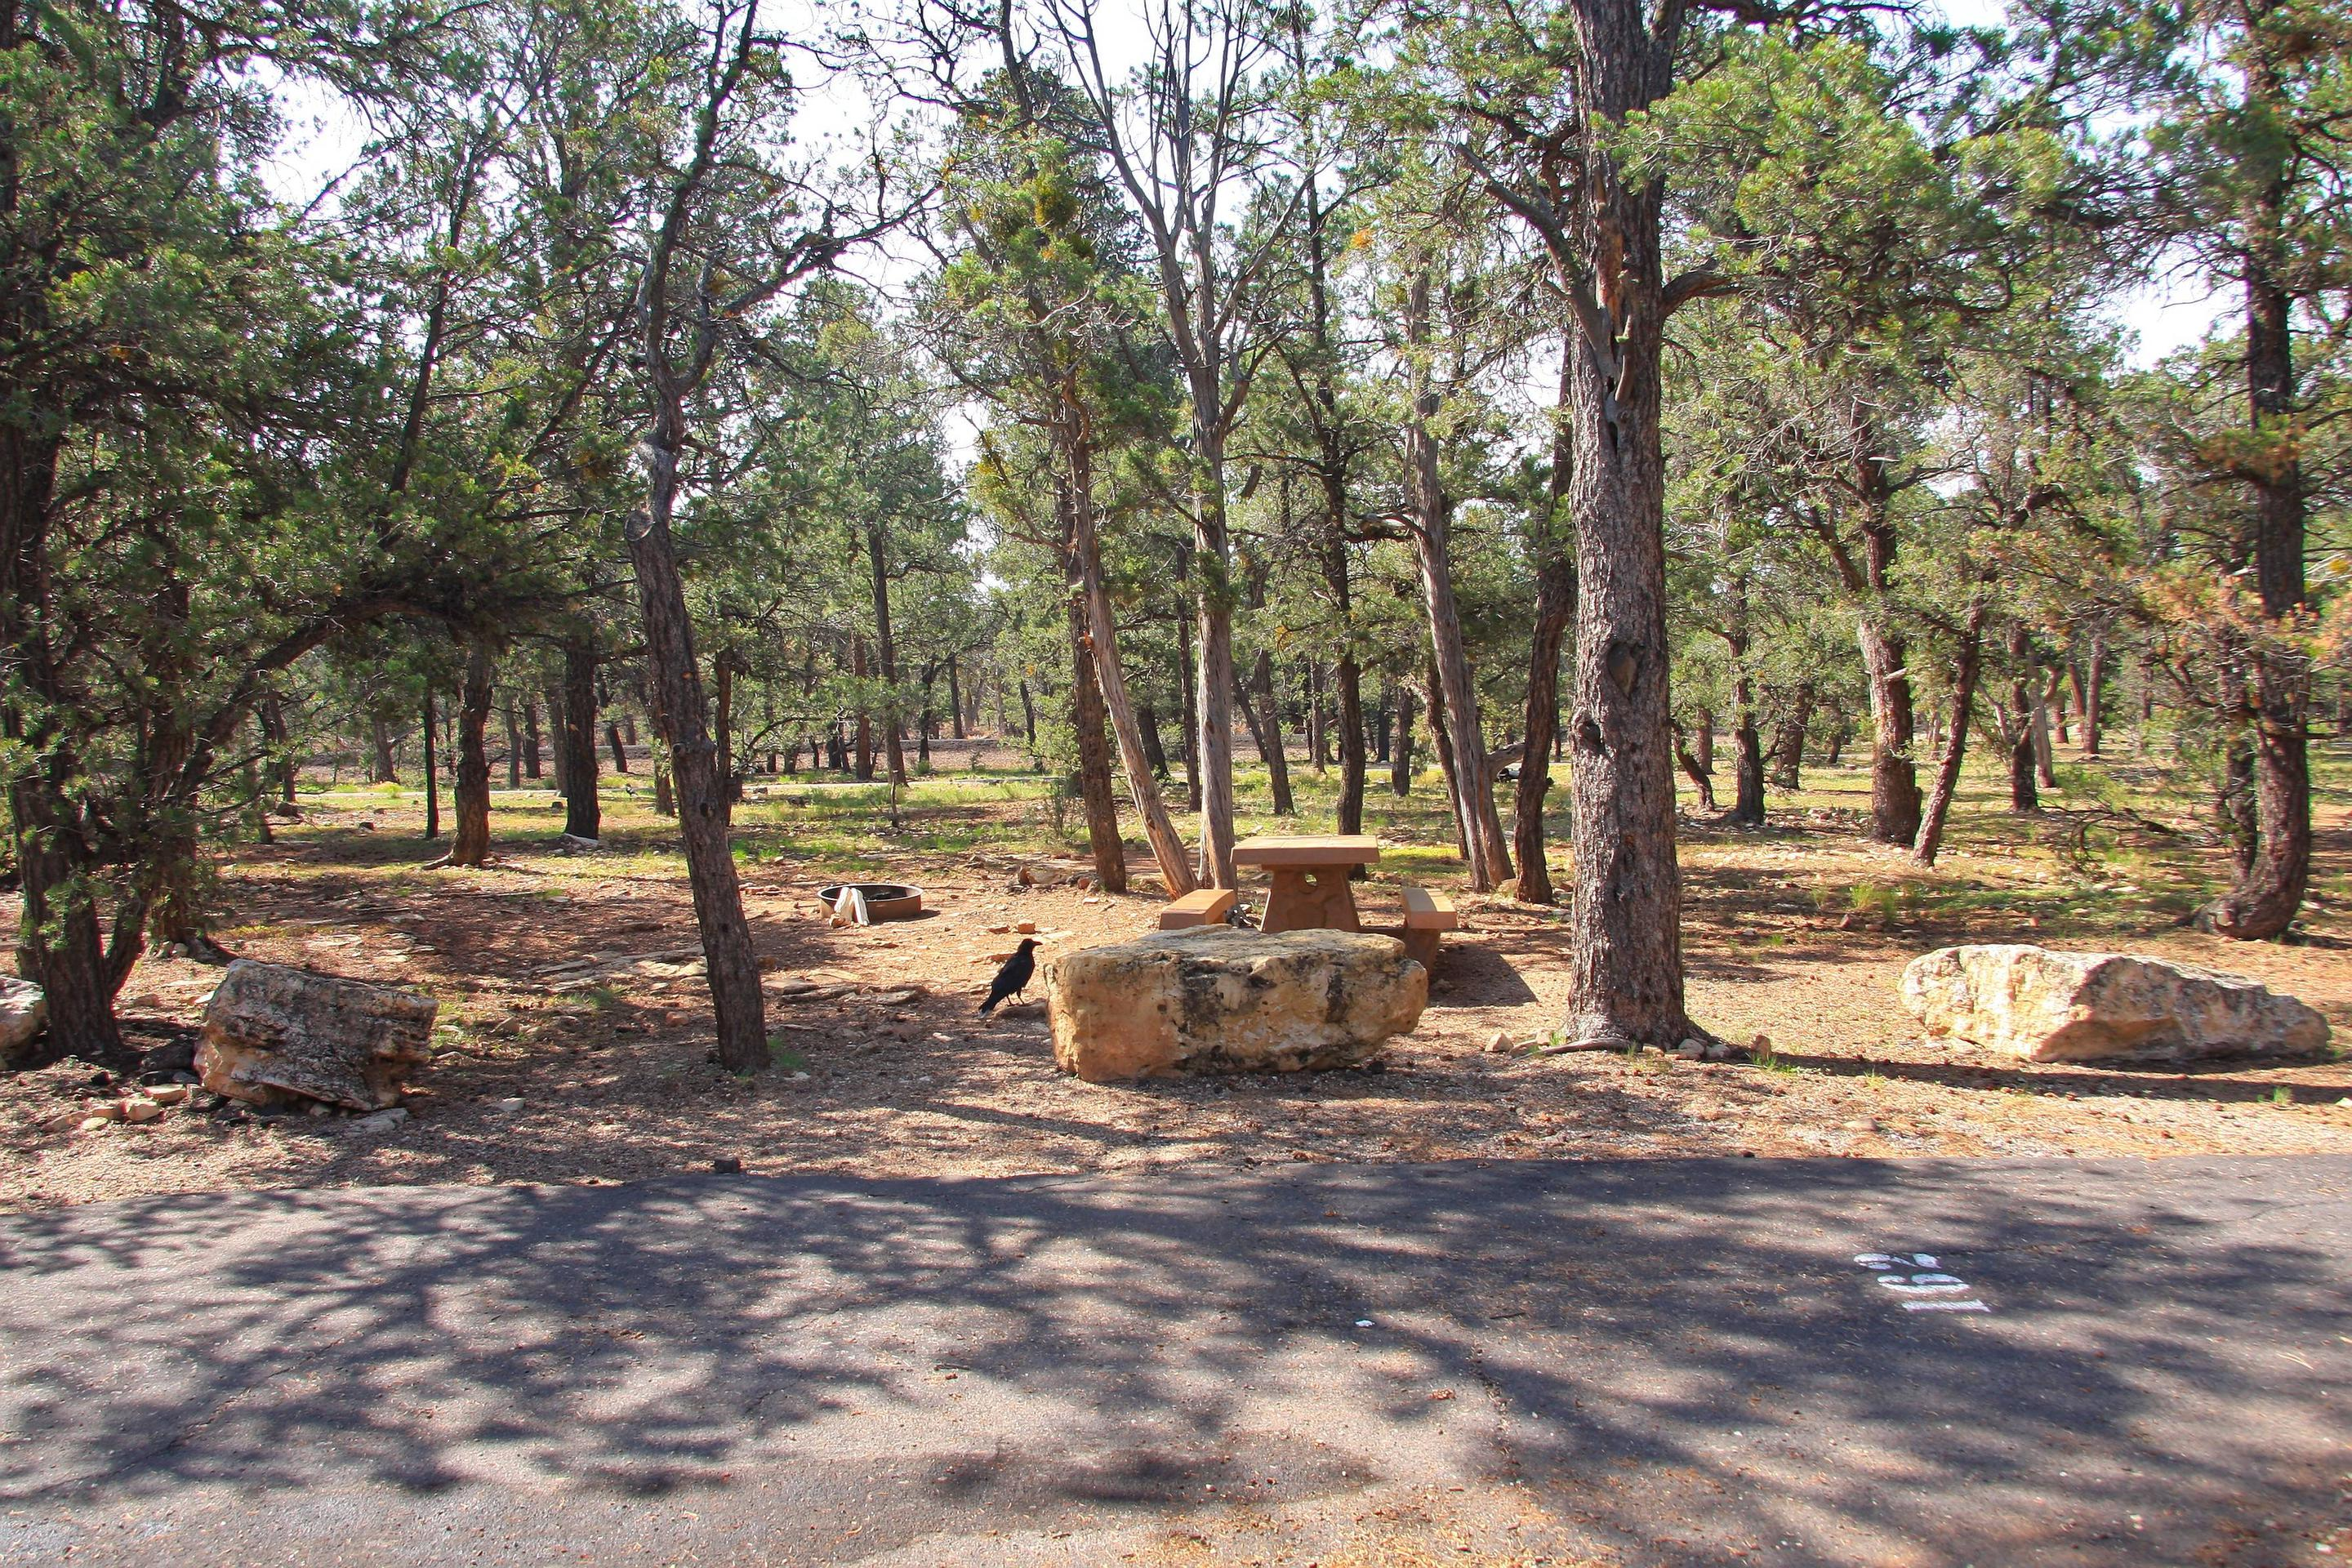 Picnic table, fire pit, and parking spot, Mather Campground